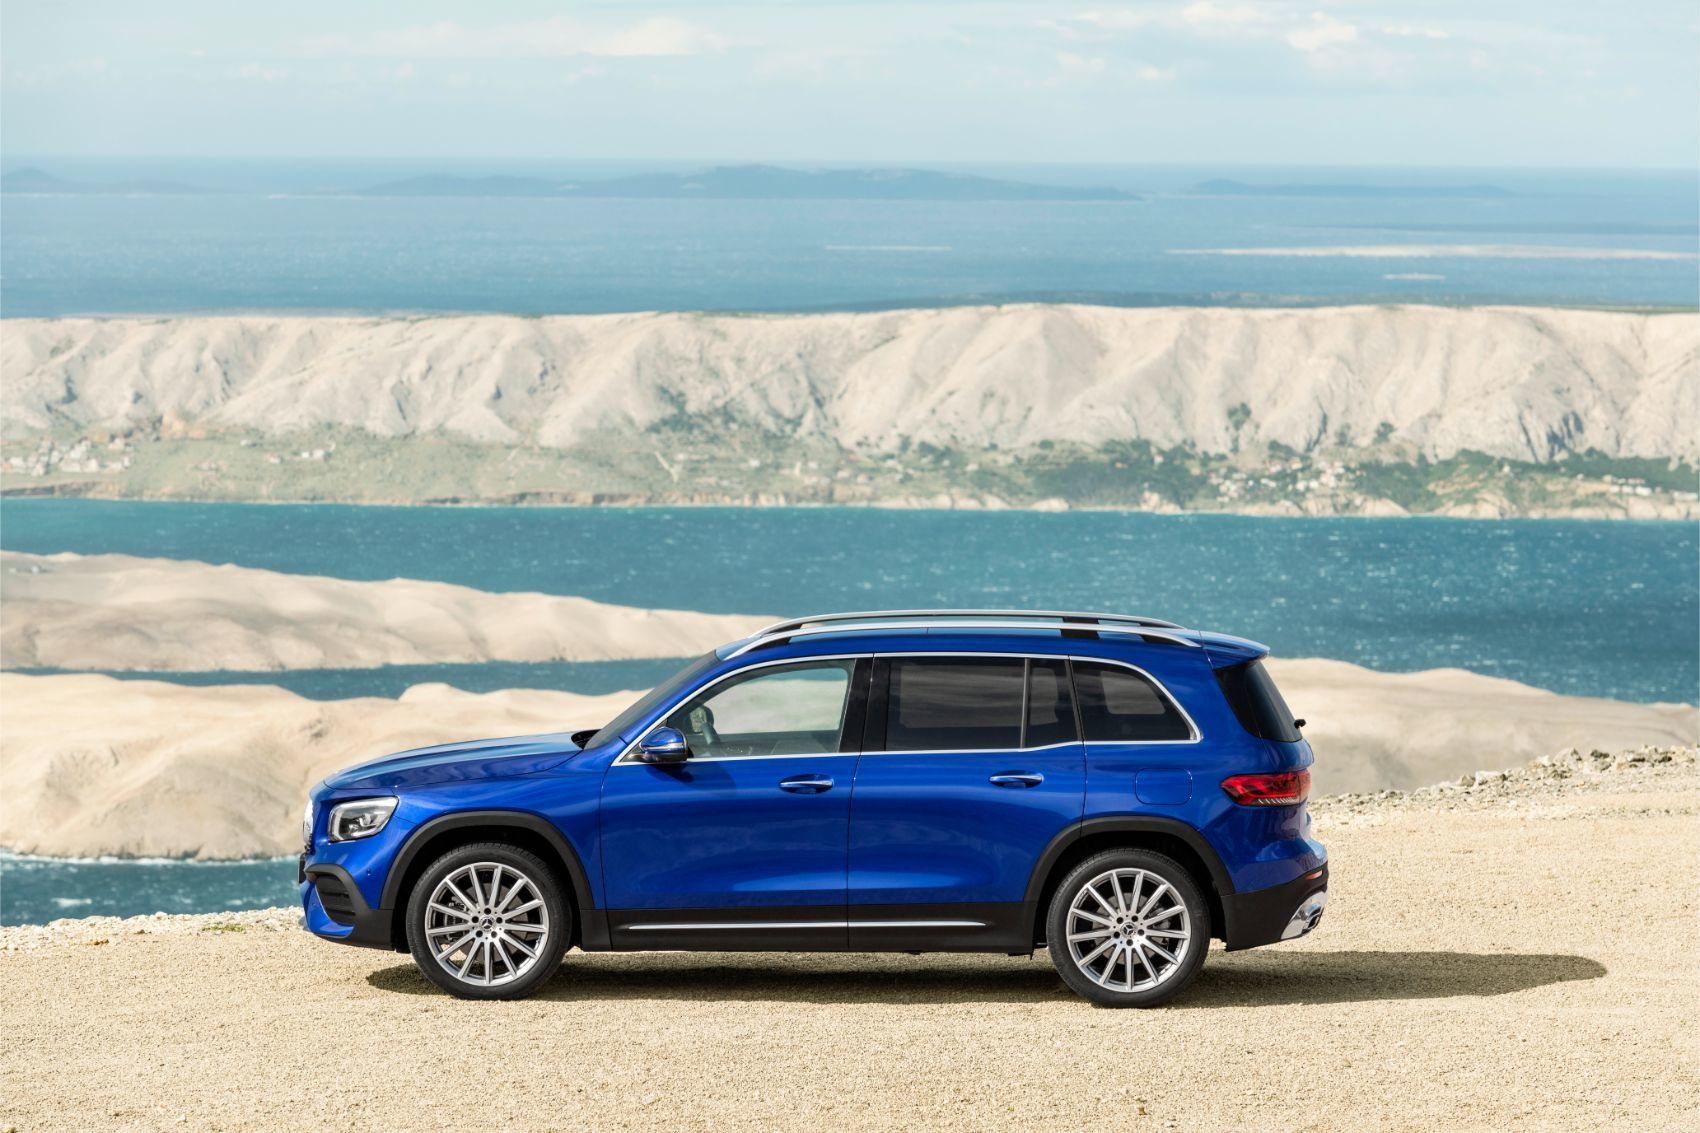 7 Seater Cars >> Mercedes-Benz GLB 250: Small Enough For Families of Seven